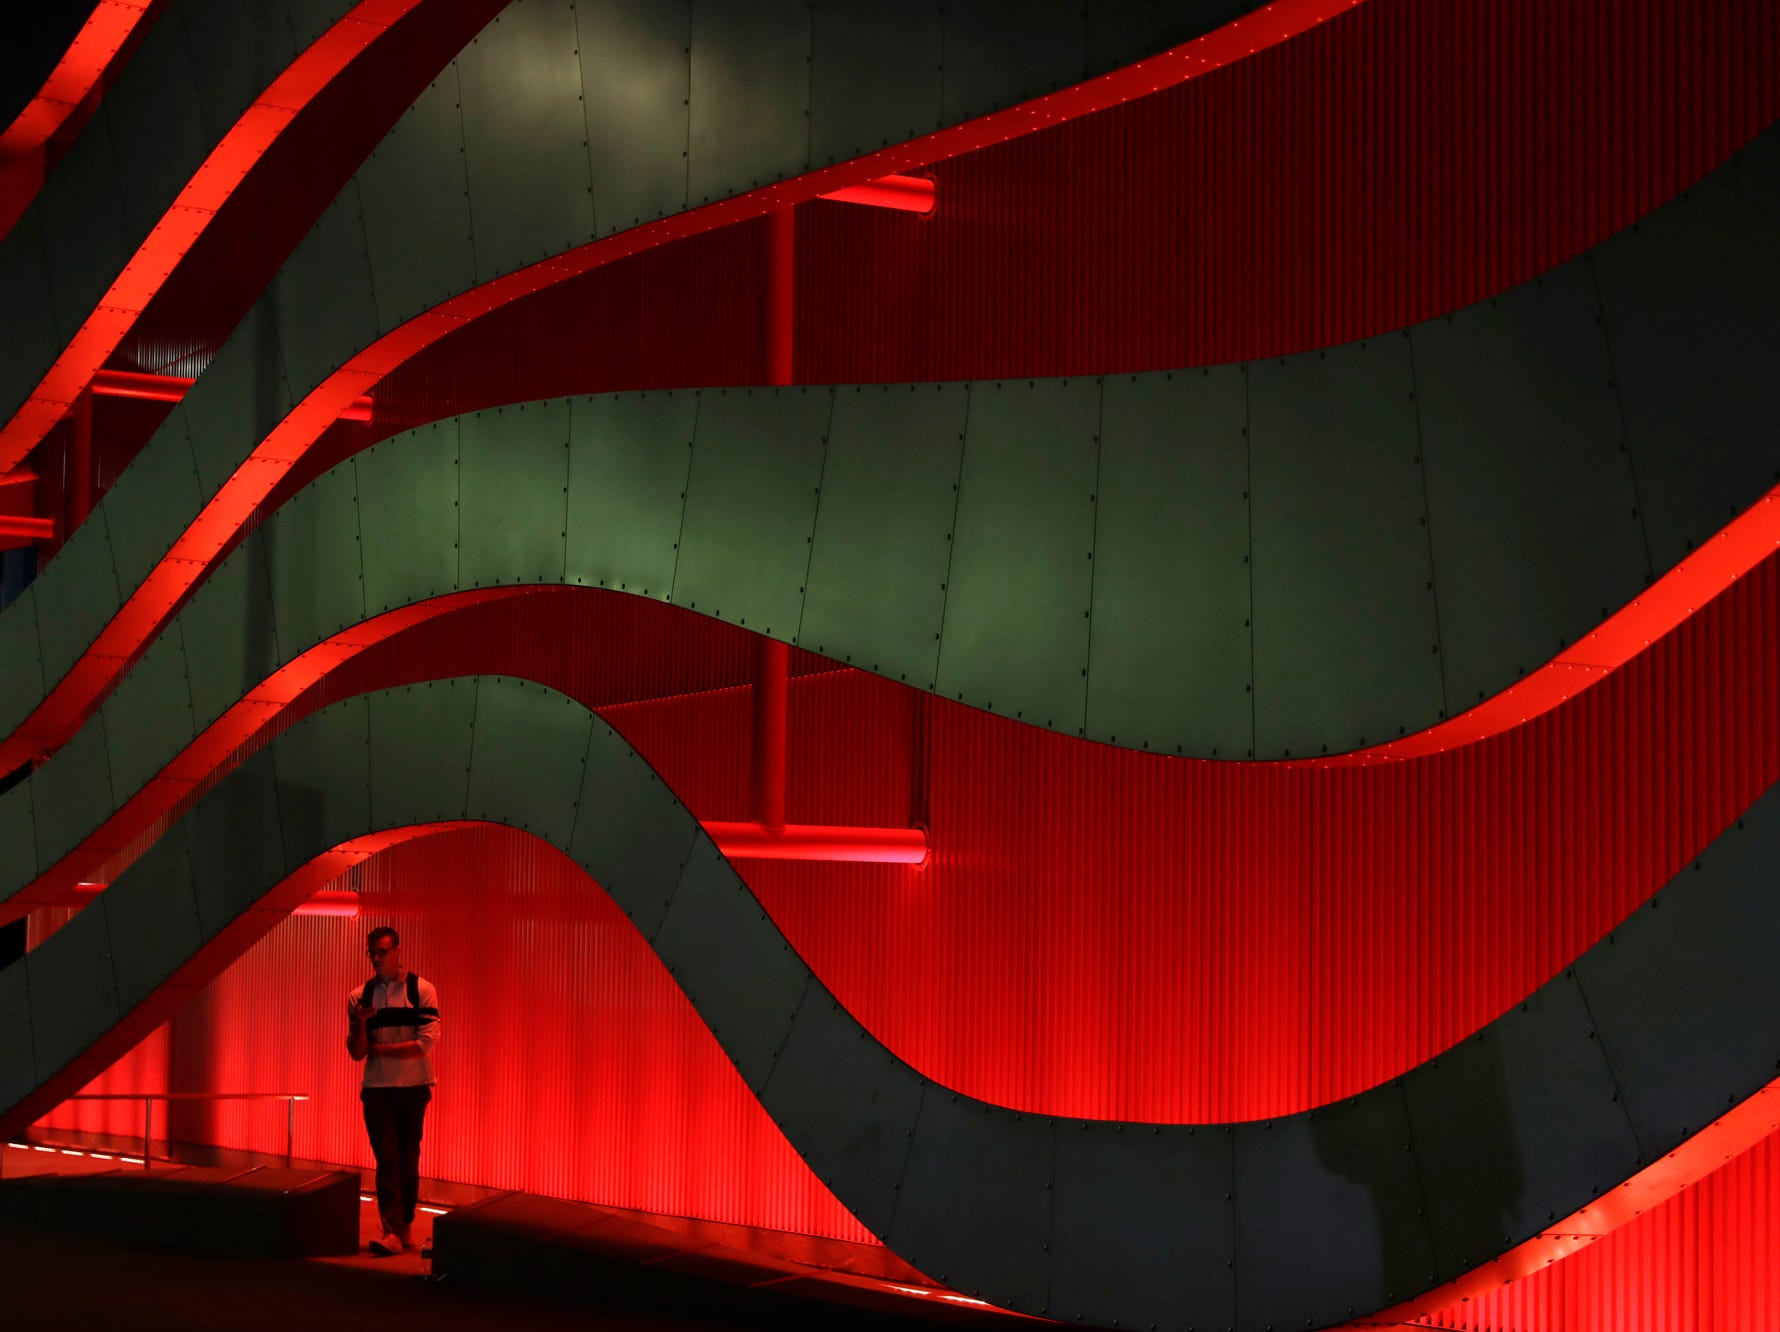 A man pauses to check his cell phone under the colorful architecture outside of the Petersen Automotive Museum Thursday, Oct. 18, 2018, in Los Angeles. (AP Photo/Marcio Jose Sanchez)